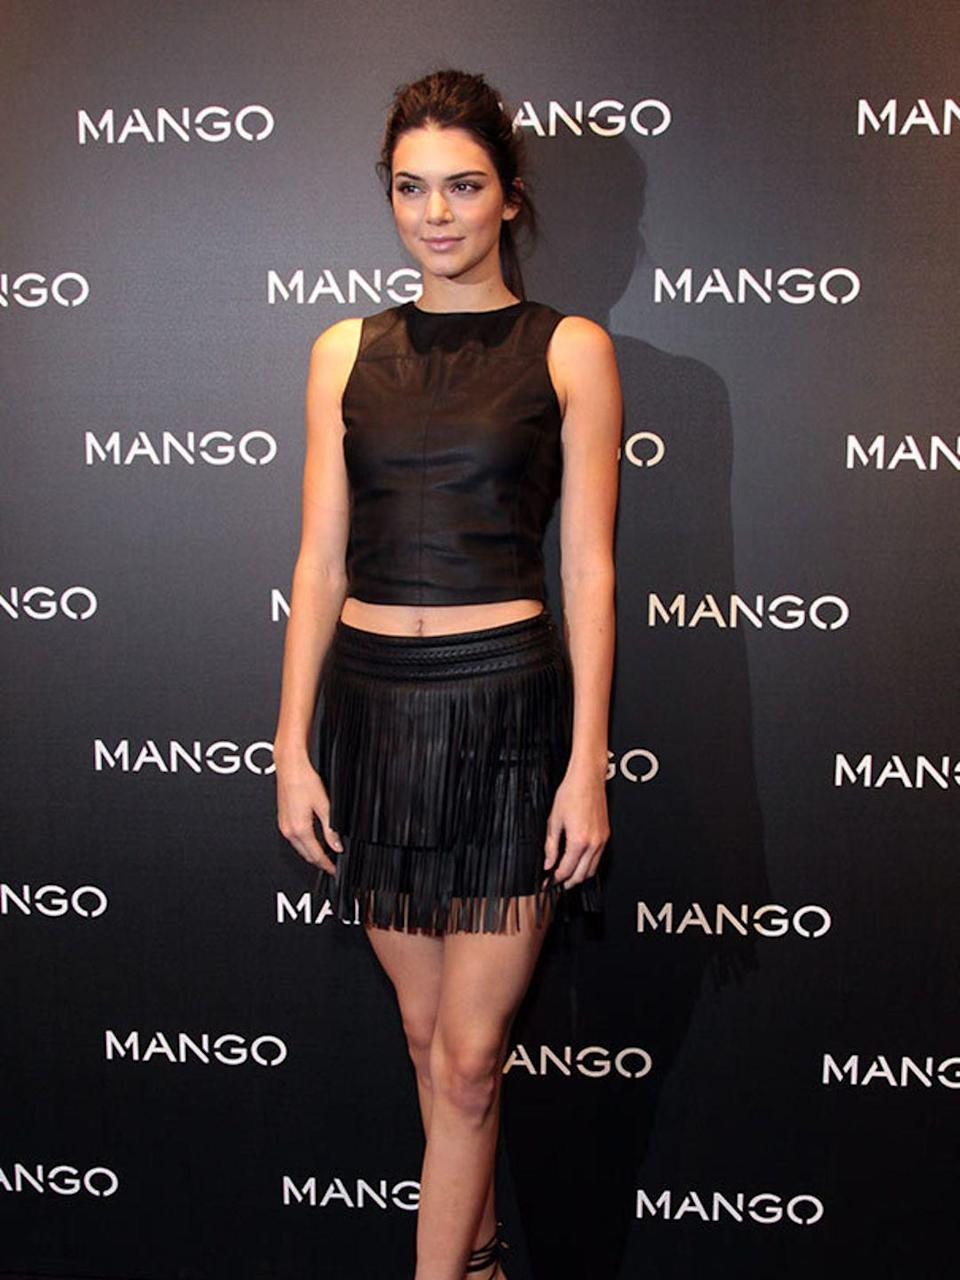 <p>Kendall Jenner Presents 'Tribal Spirit The Secret Party' By Mango In Barcelona, January 2016</p>